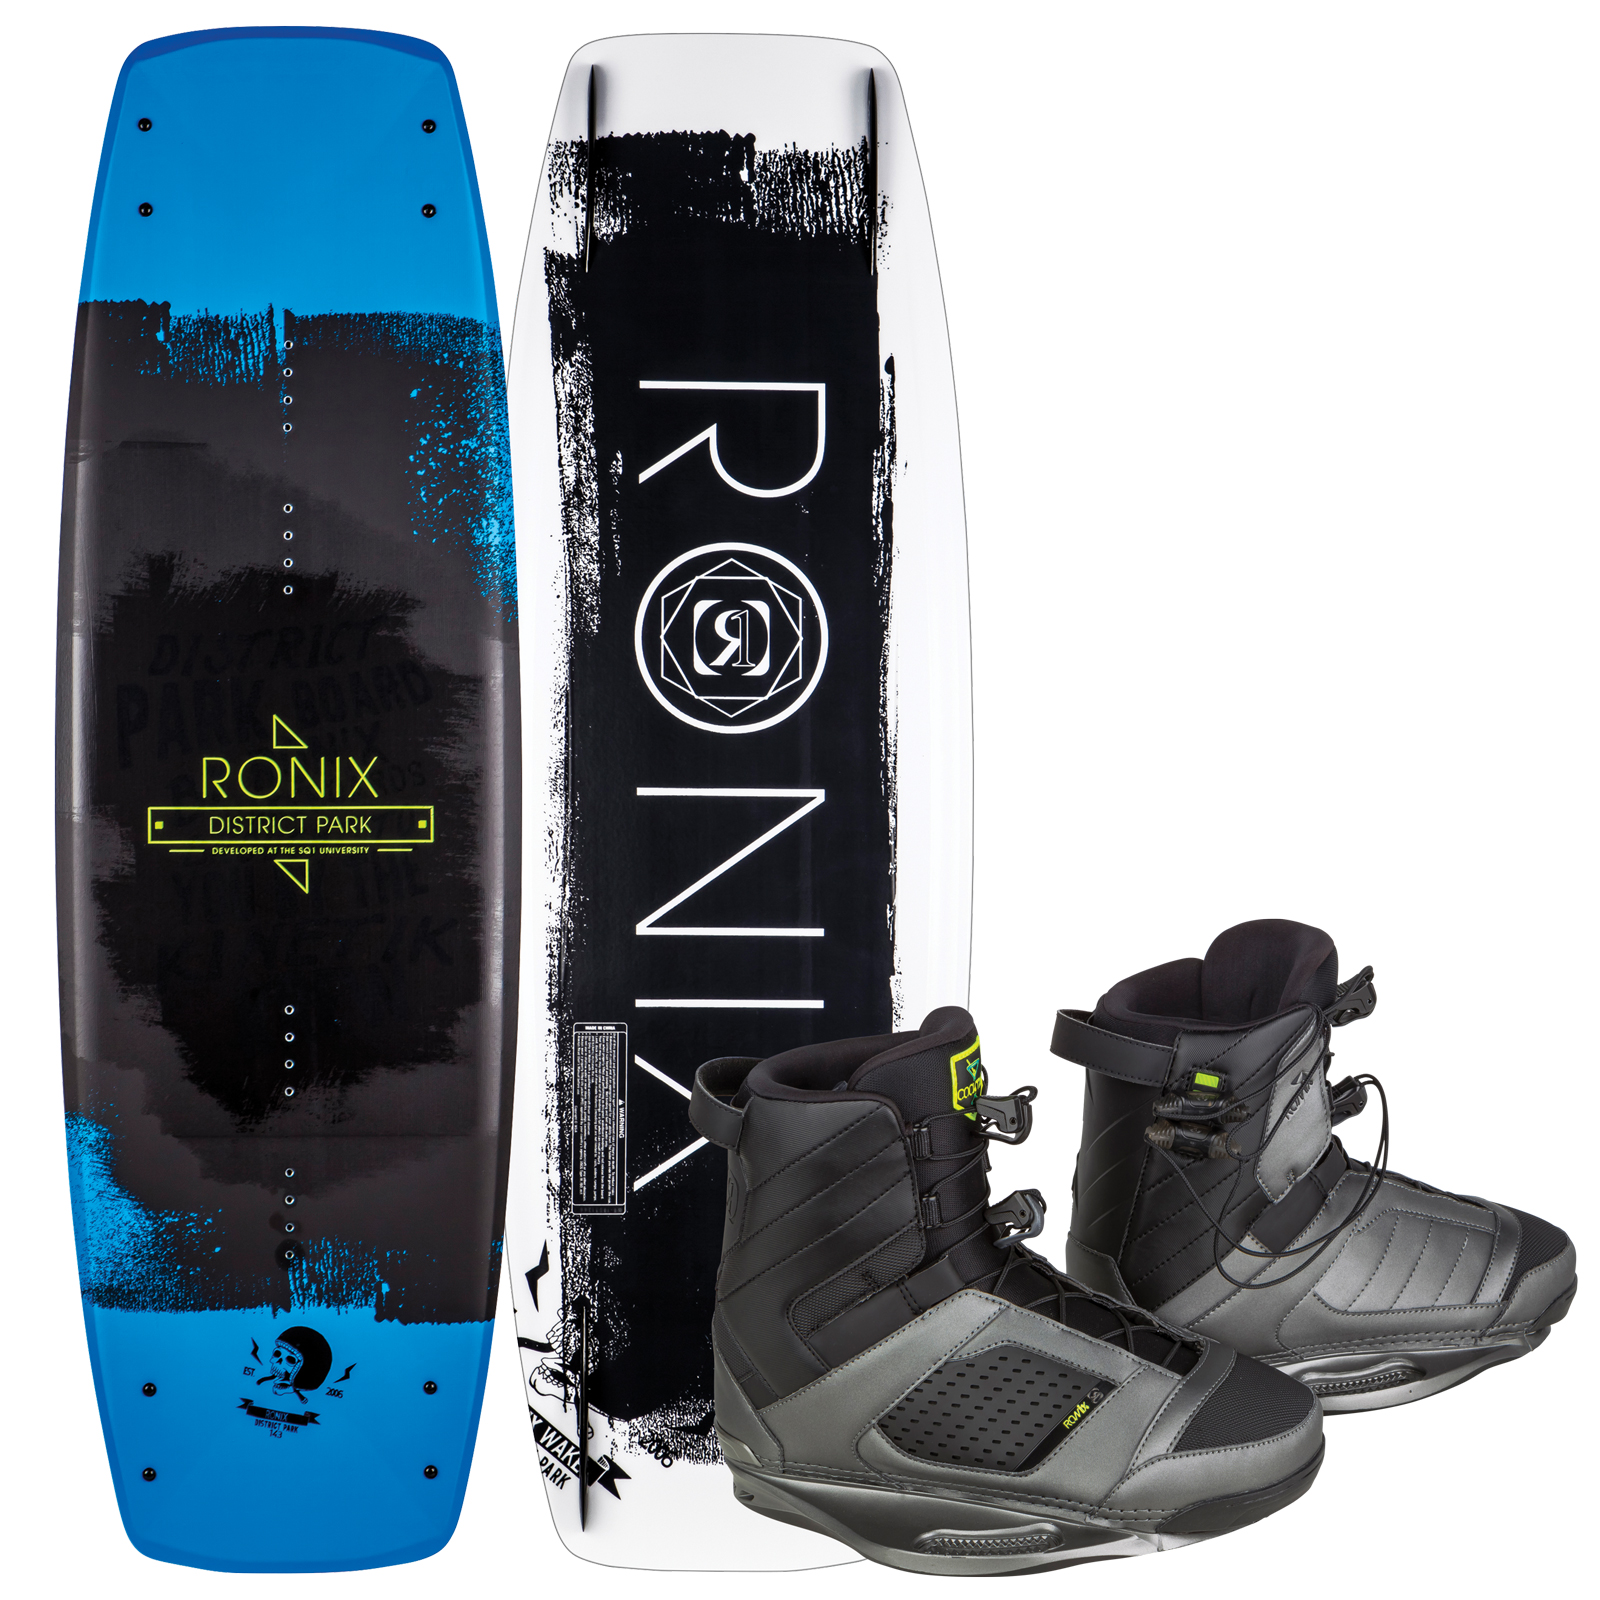 DISTRICT PARK 143 W/ COCKTAIL PACKAGE RONIX 2017